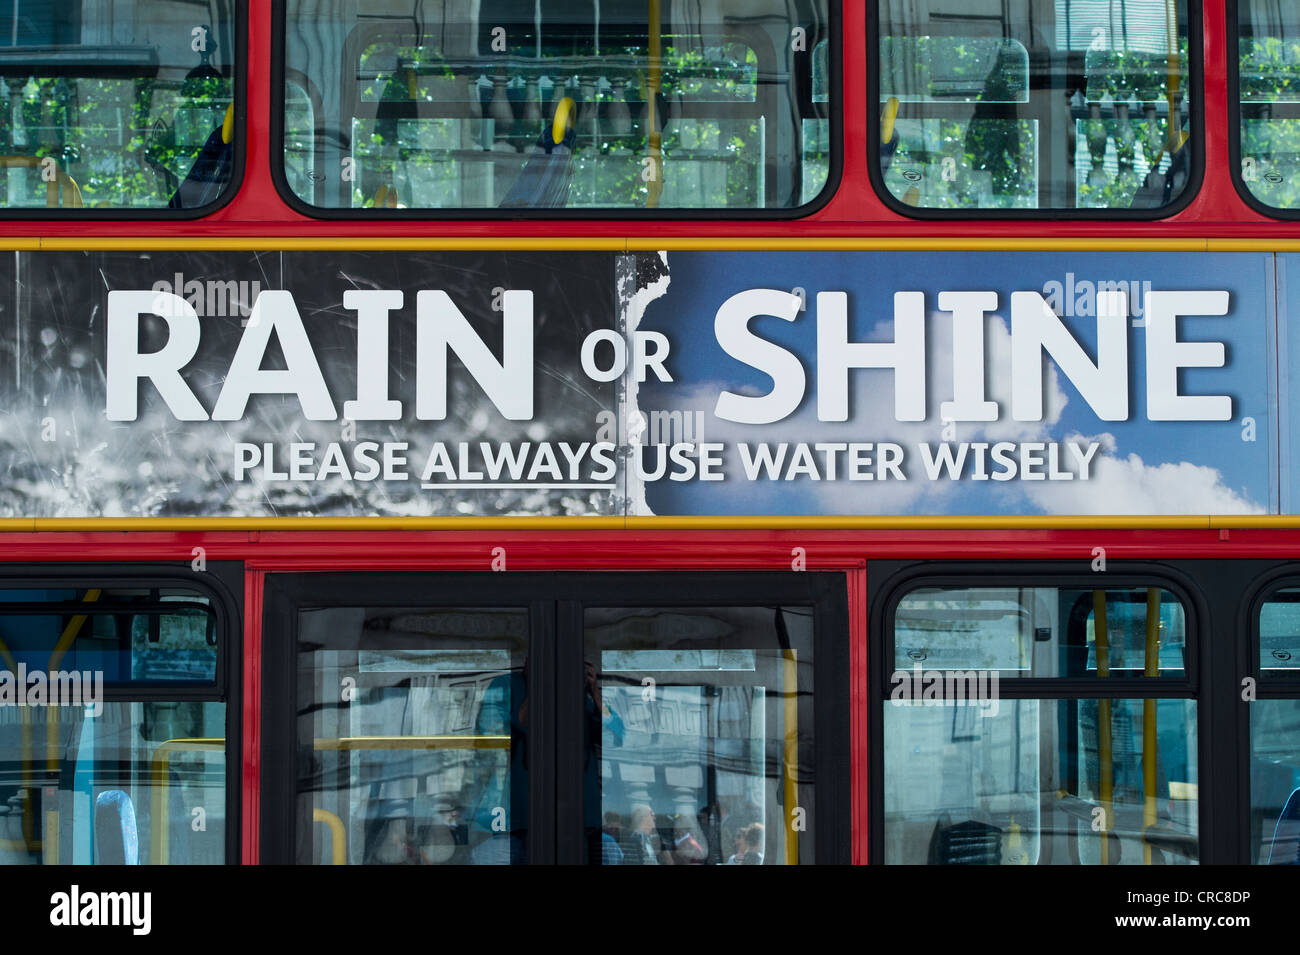 Rain or Shine water advert on the side of a double decker bus. London. England - Stock Image